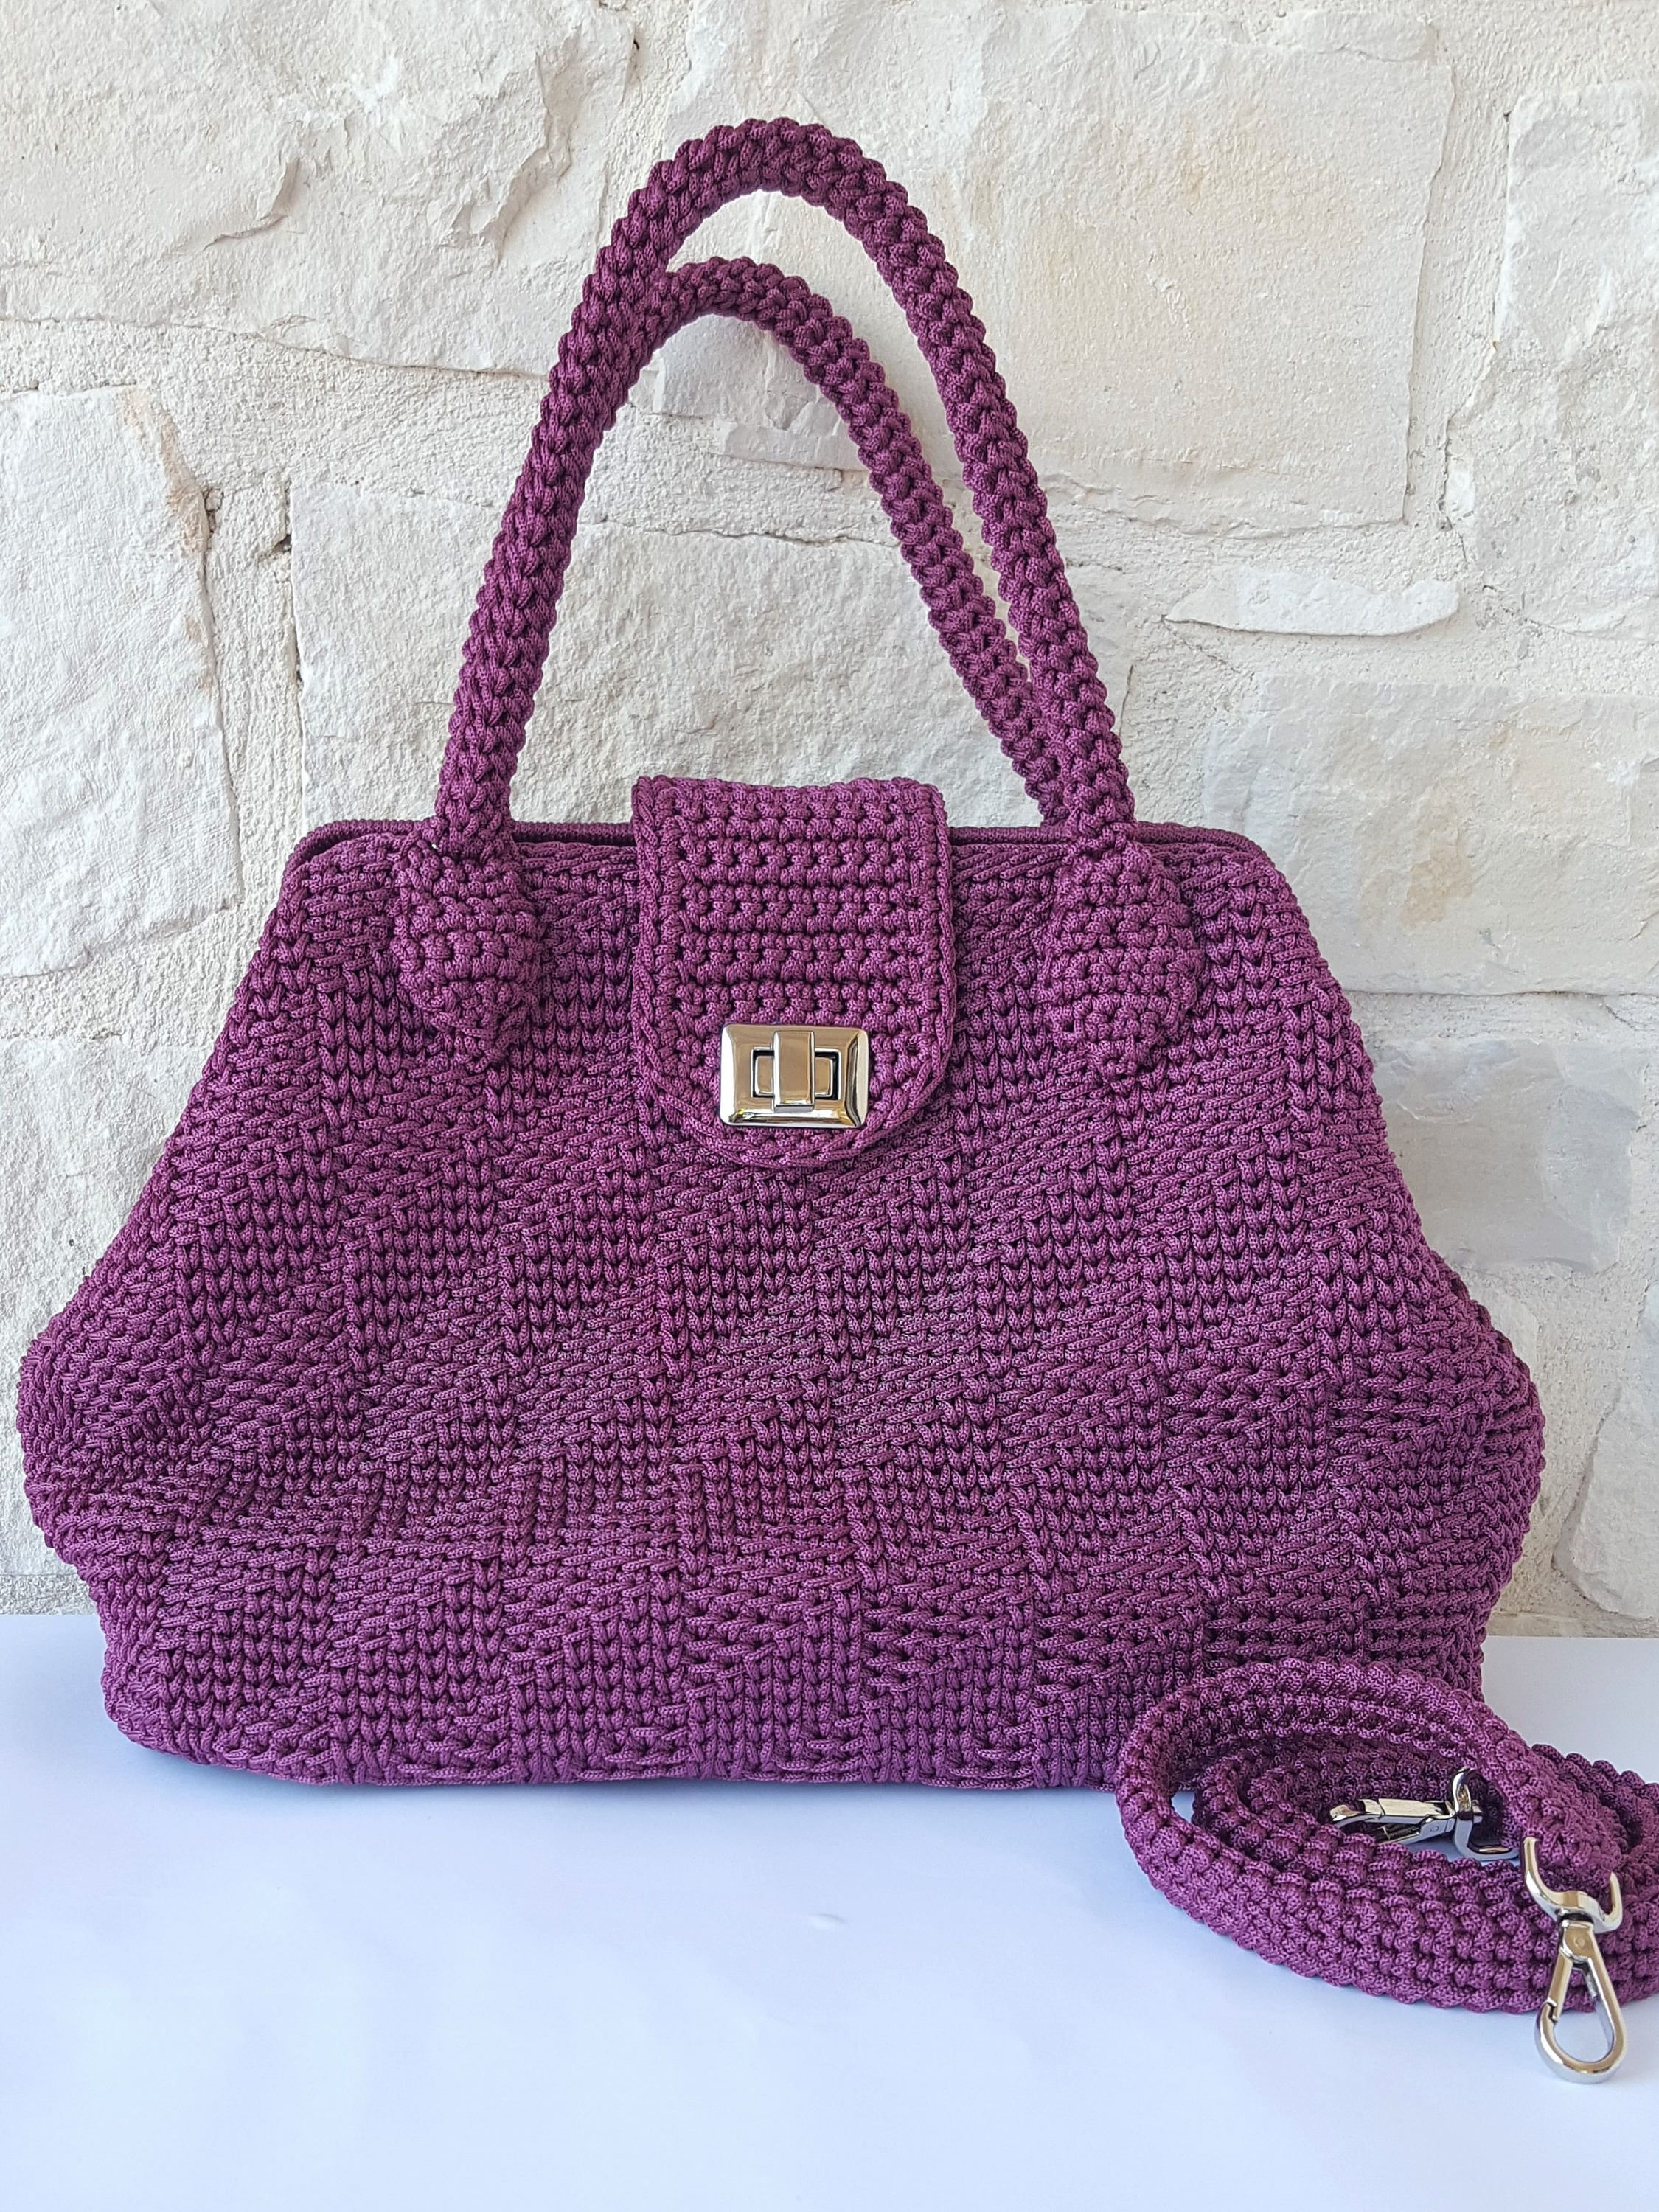 Fatto Marsala Cordino Uncinetto Accessorio Regalo Di In Italy Borsa Donna Mano Made A nqHw1zO